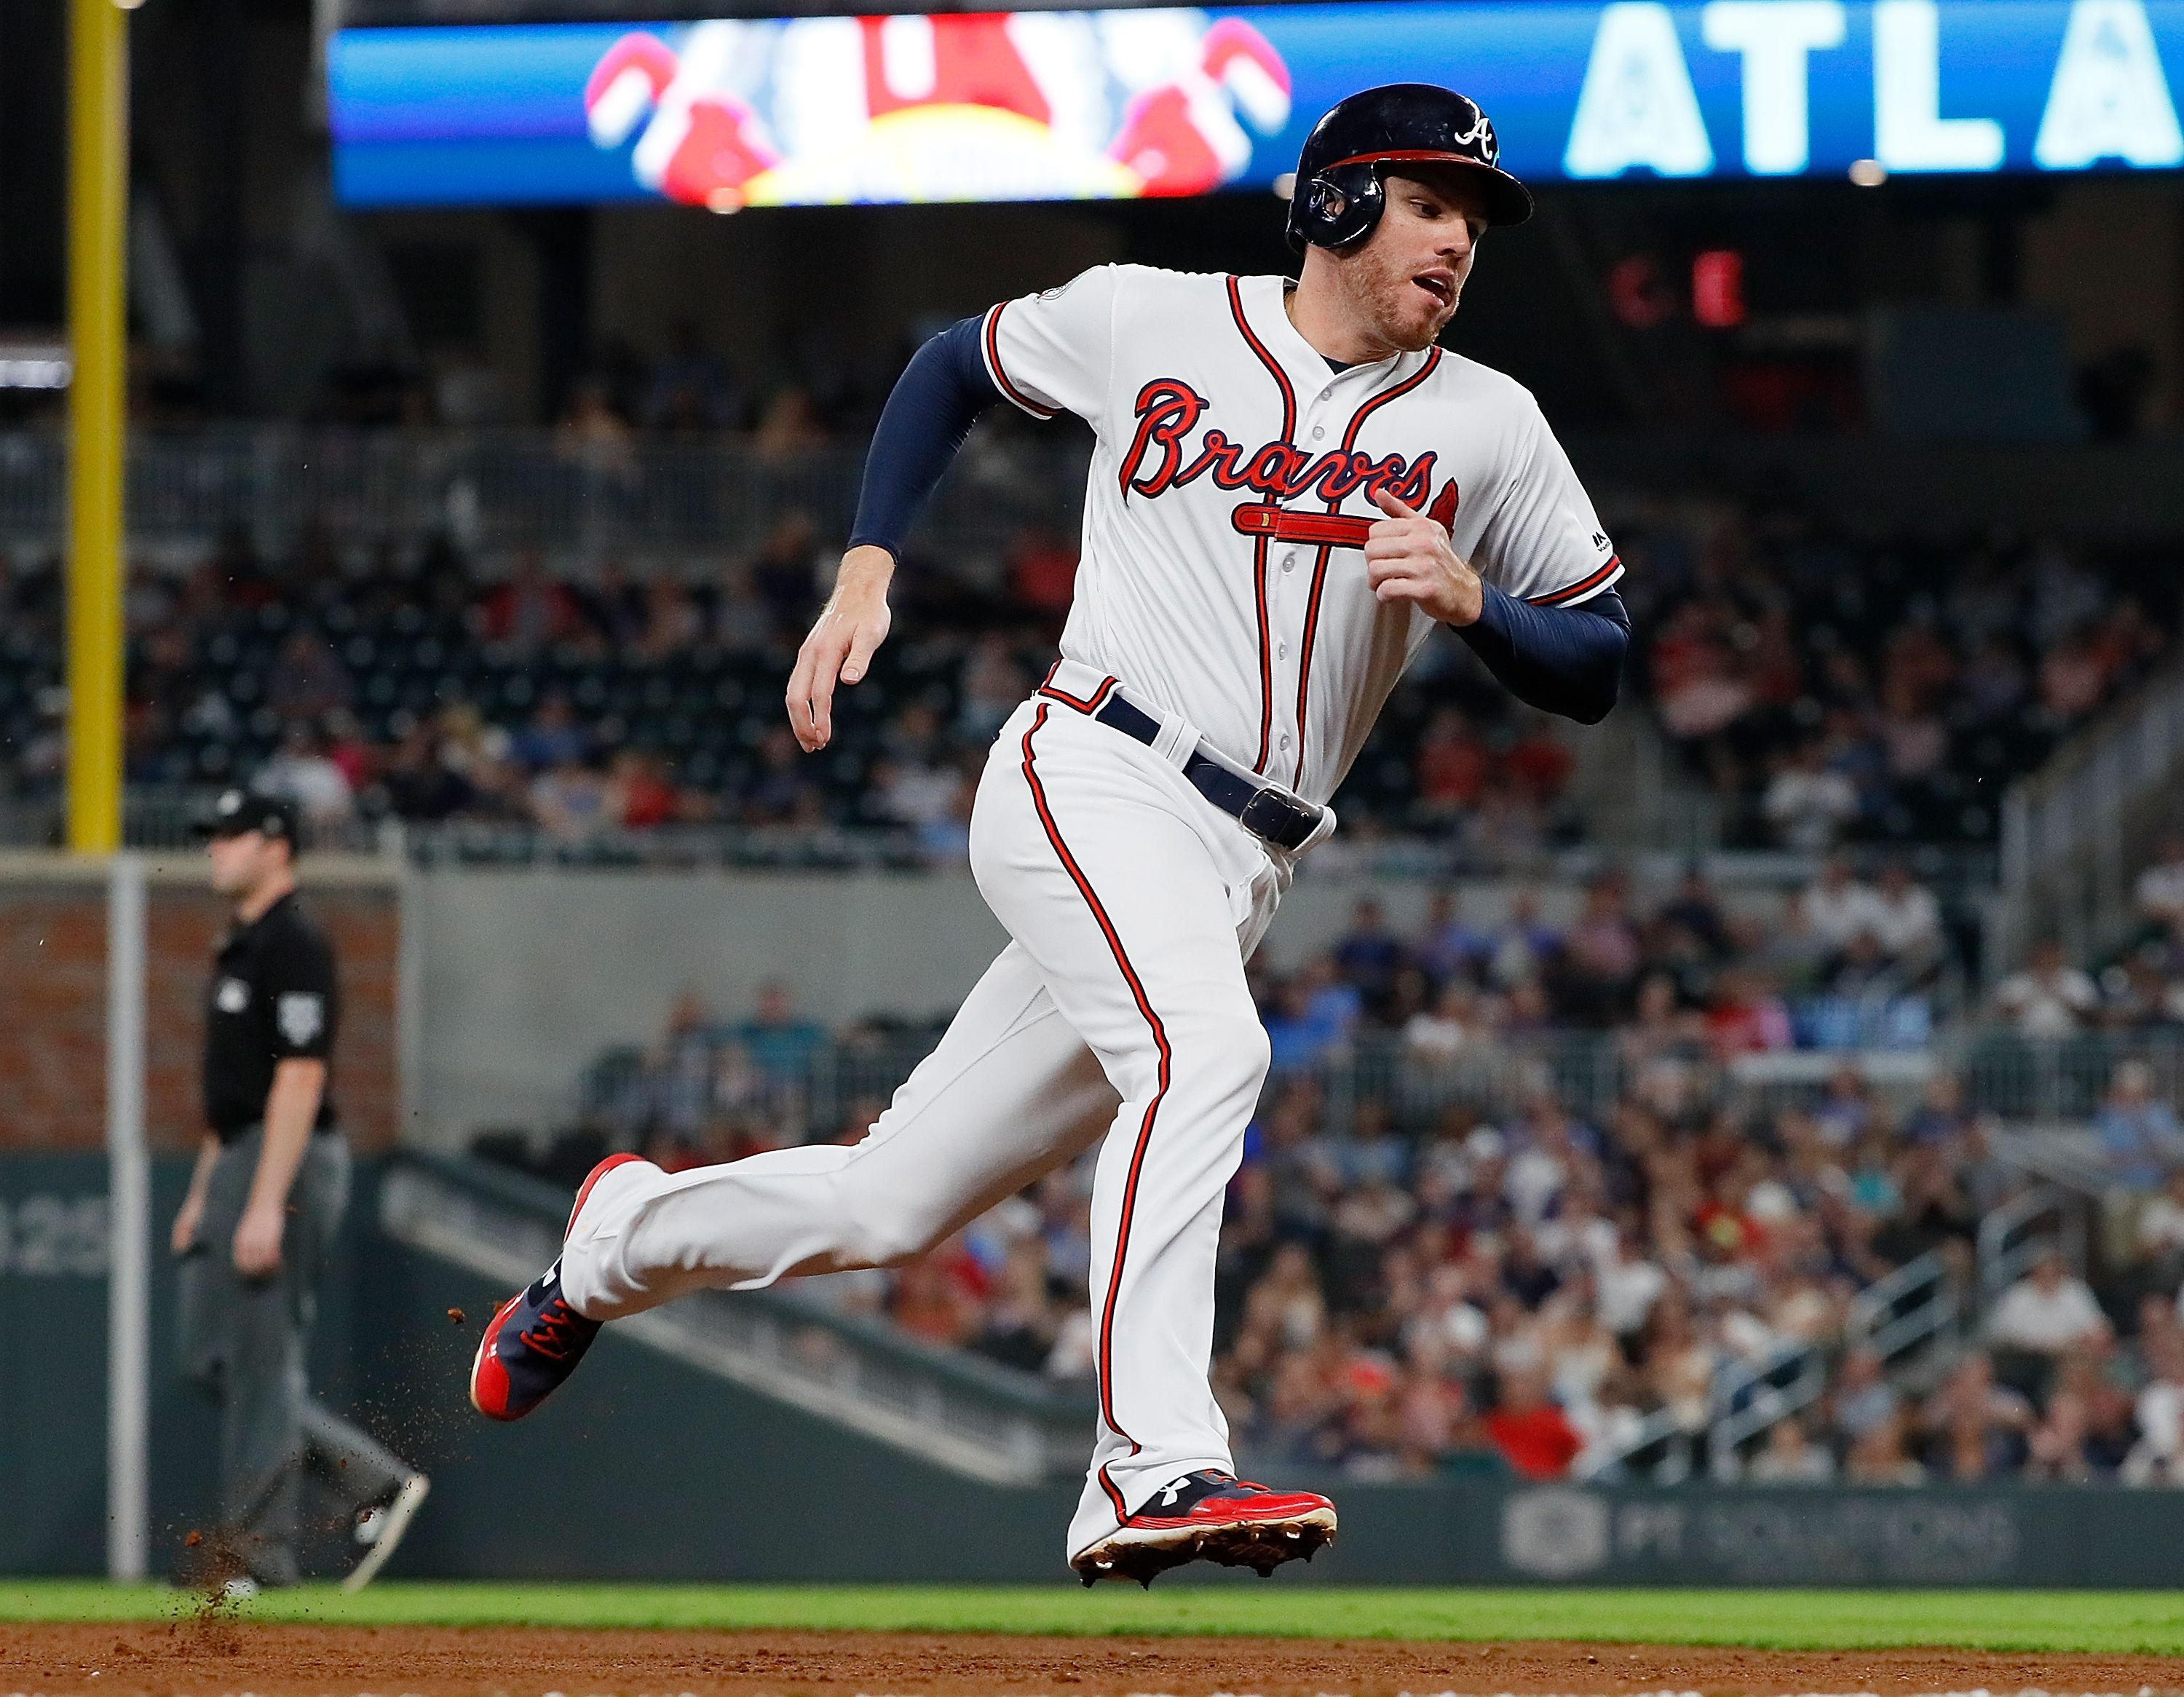 Atlanta Ga September 19 Freddie Freeman 5 Of The Atlanta Braves Rounds Third Base On The Way To Score On A Rbi Single Hit By Kurt Suz Braves Atlanta Braves